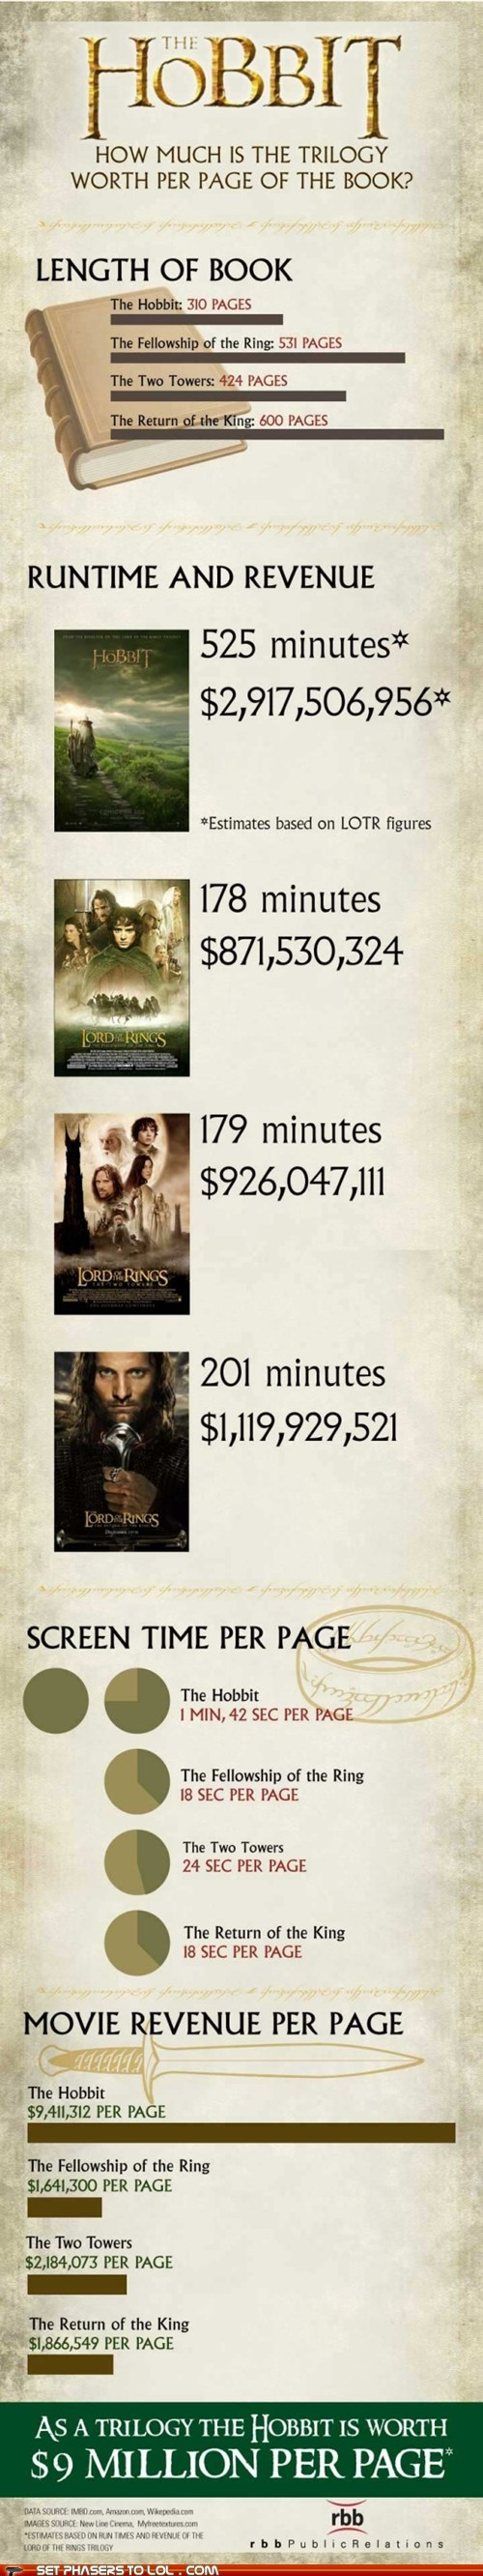 How Much Money Per Page is Tolkien's Writing Worth at the Box Office?